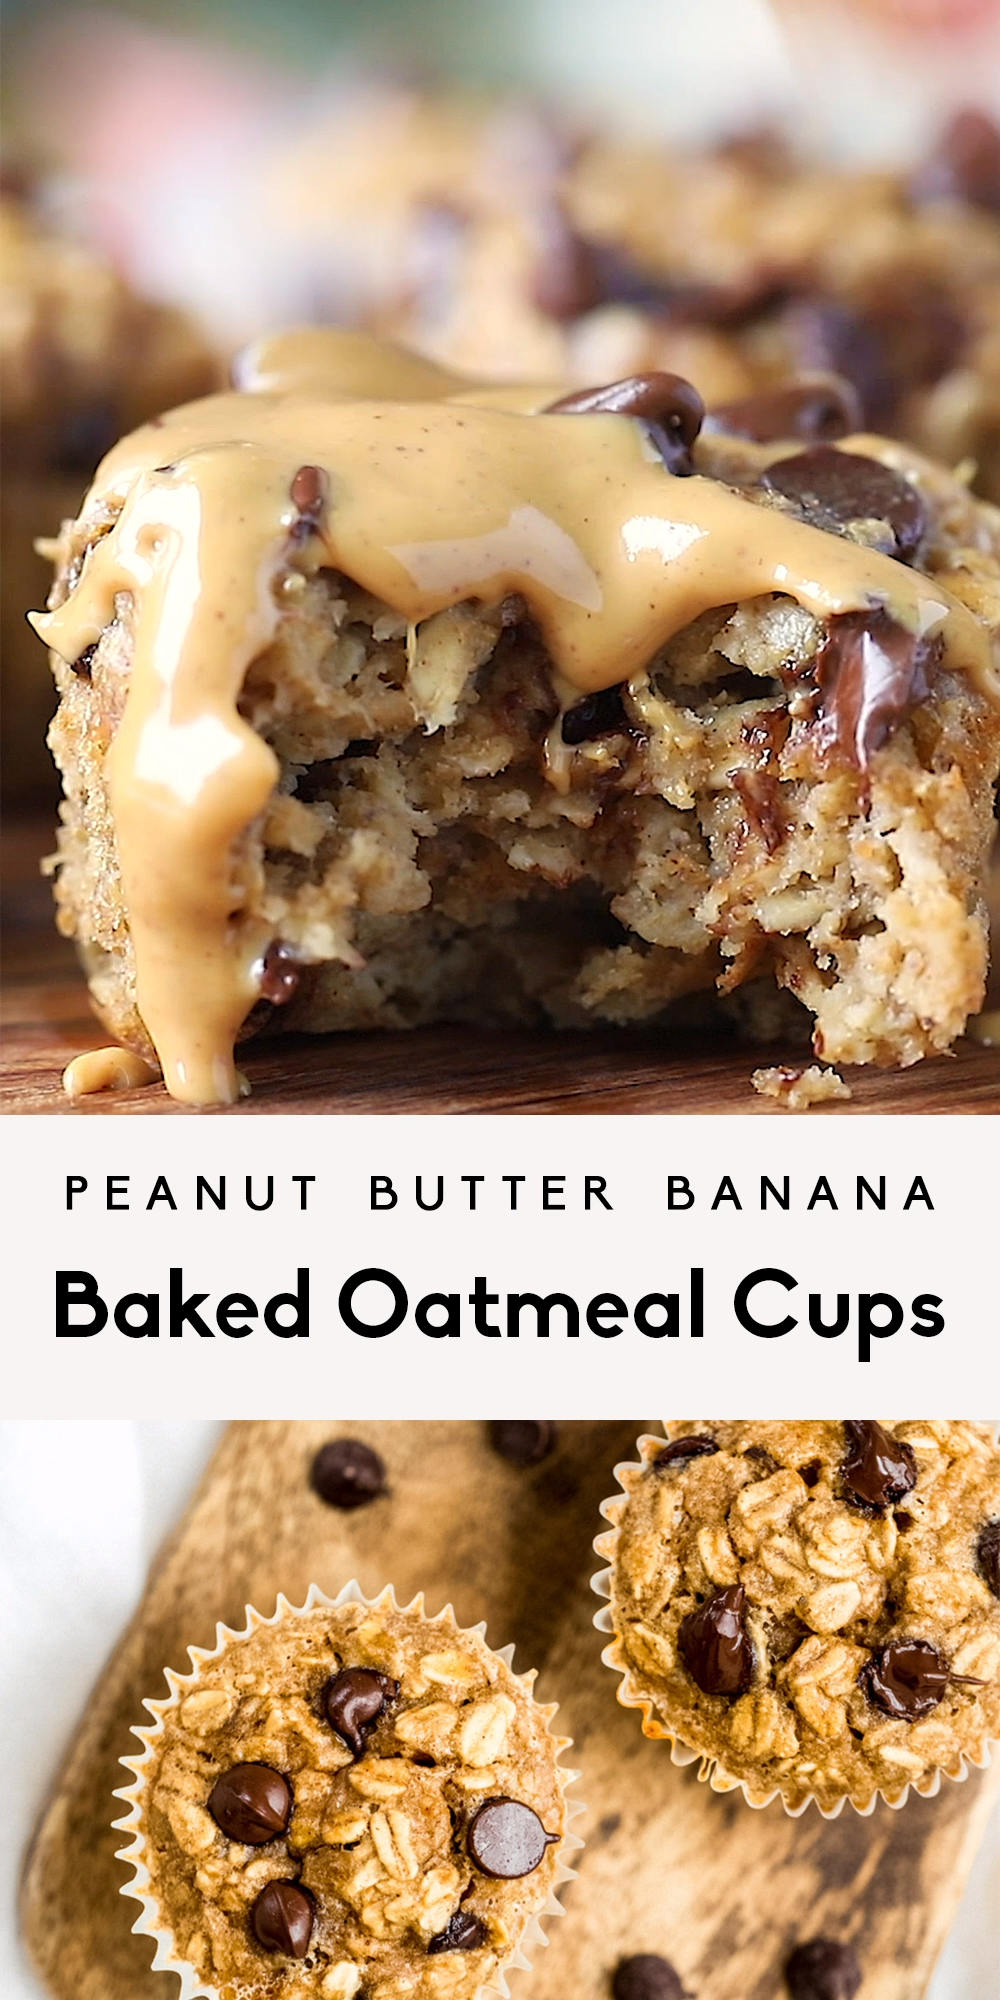 Peanut Butter Banana Baked Oatmeal Cups #peanutbutterballs